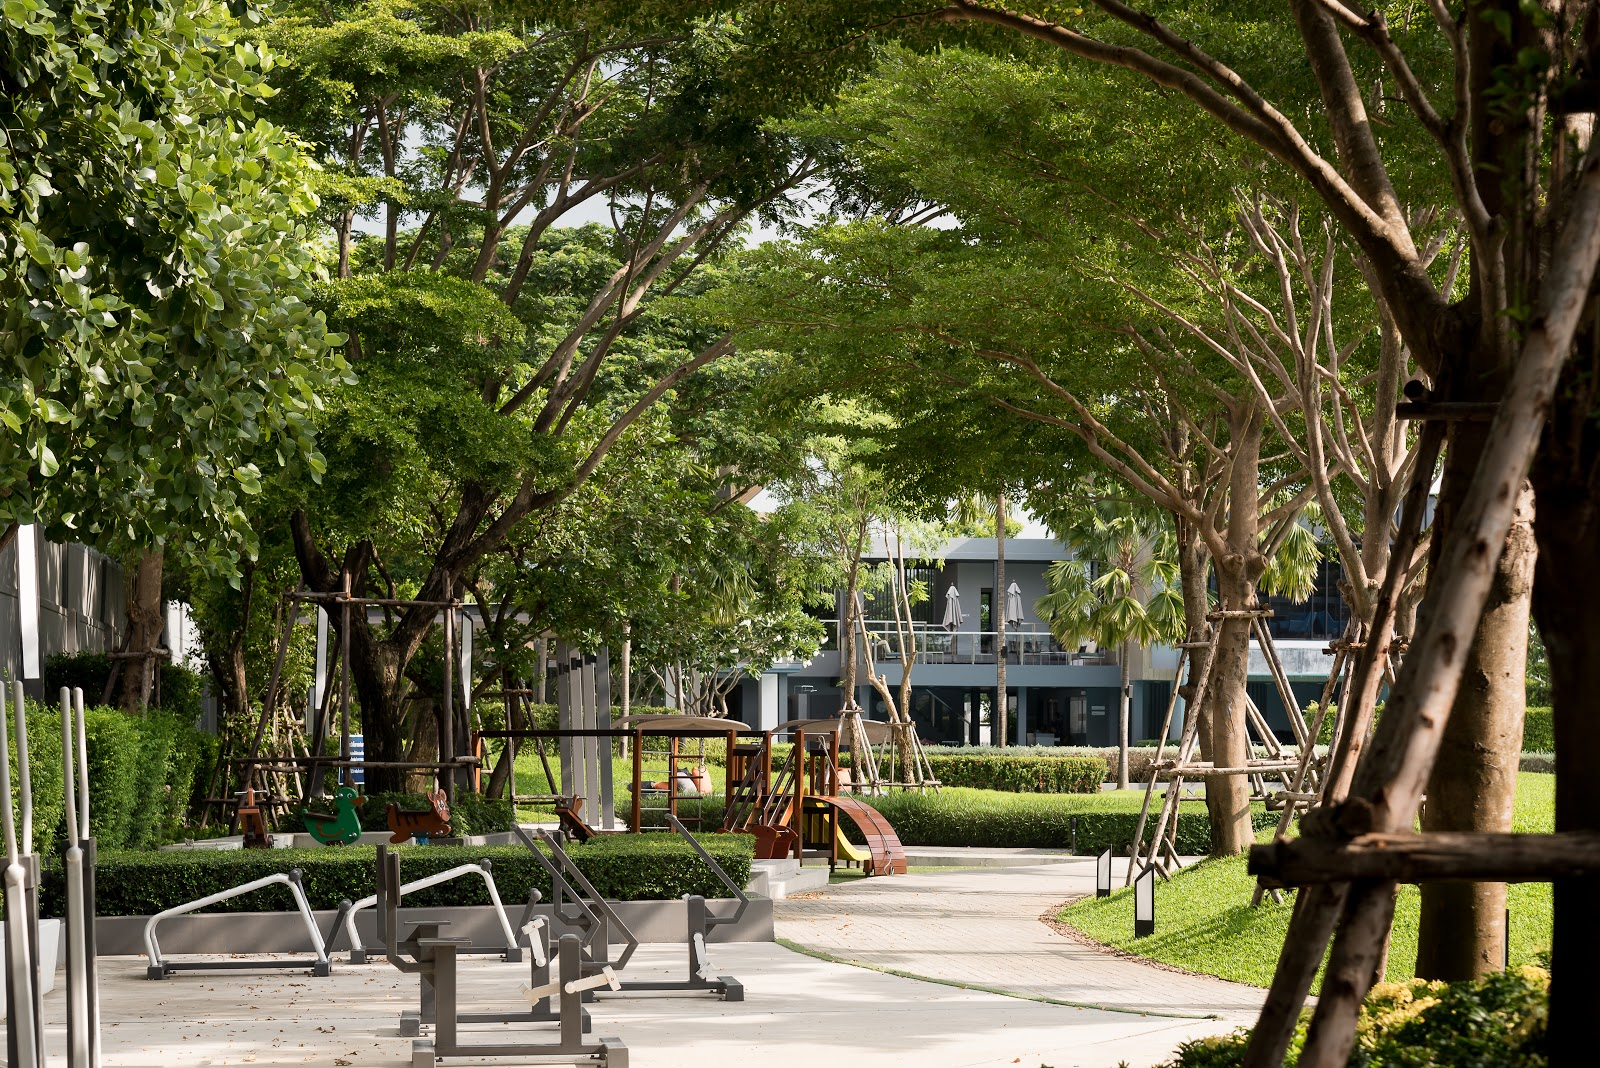 Urban Parks city parks parks in the city types of parks in the US